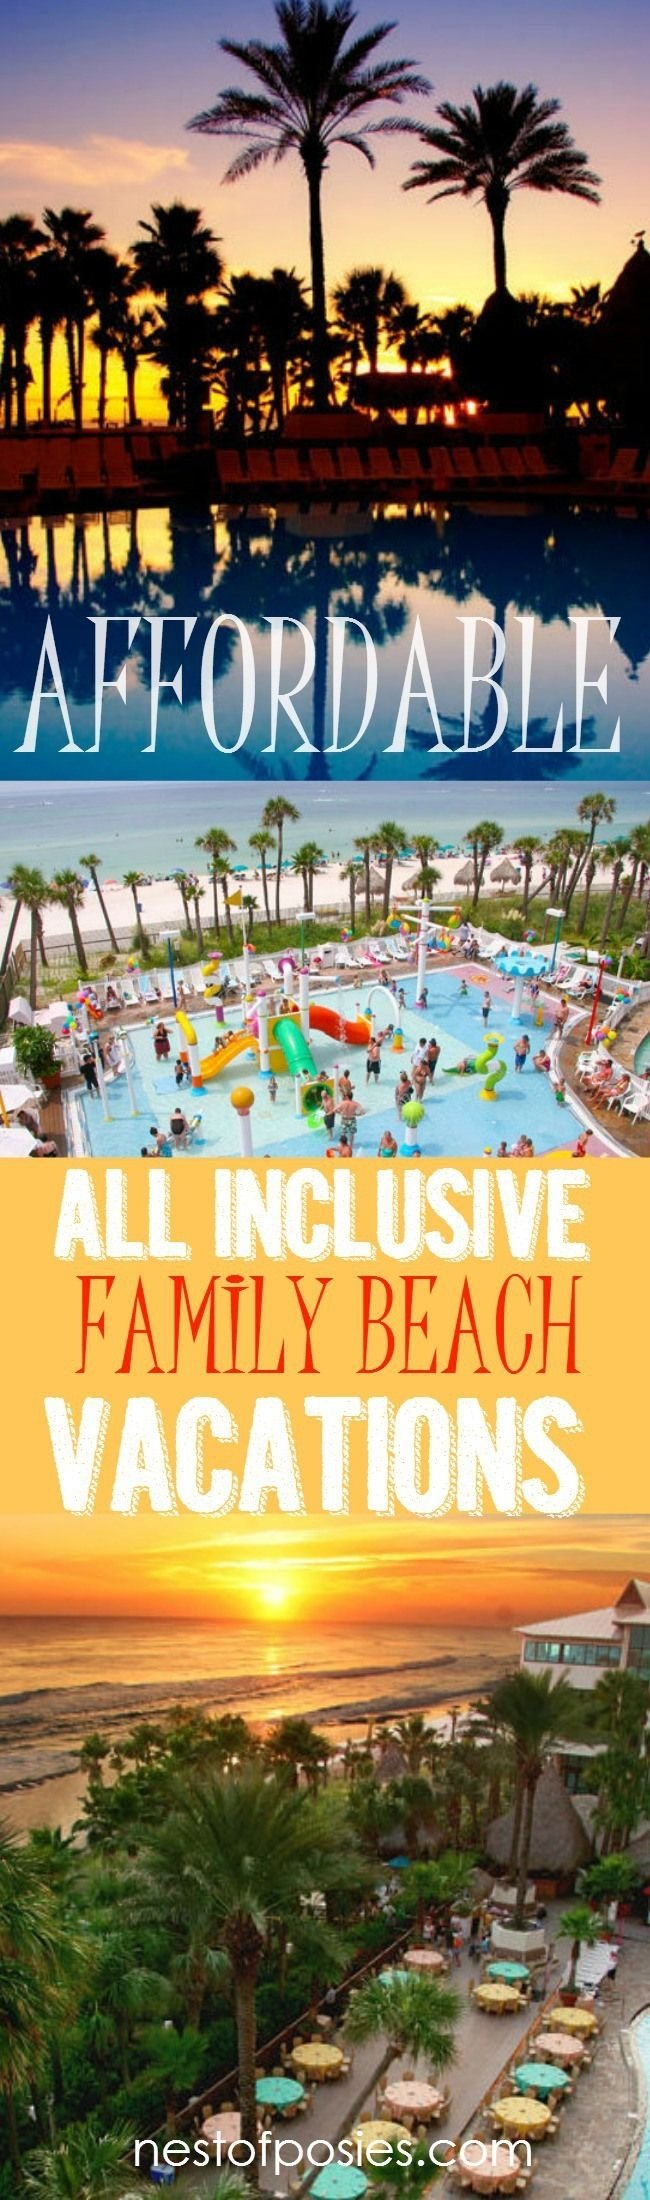 22 best all inclusive resorts images on pinterest | dream vacations